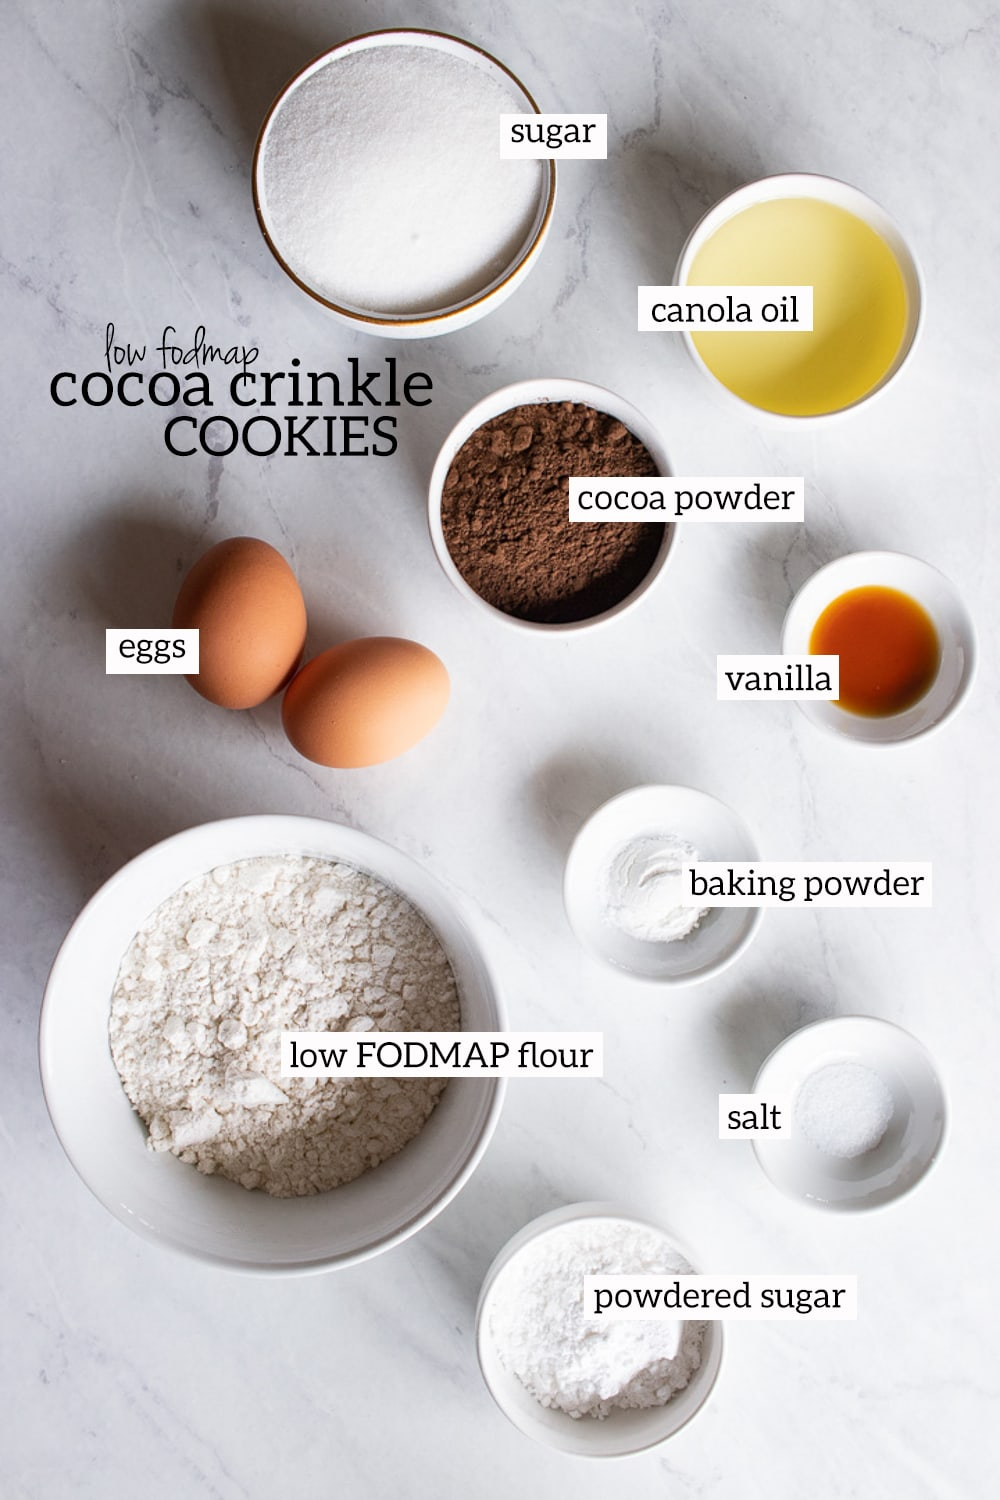 bowls of ingredients needed for cocoa crinkle cookies